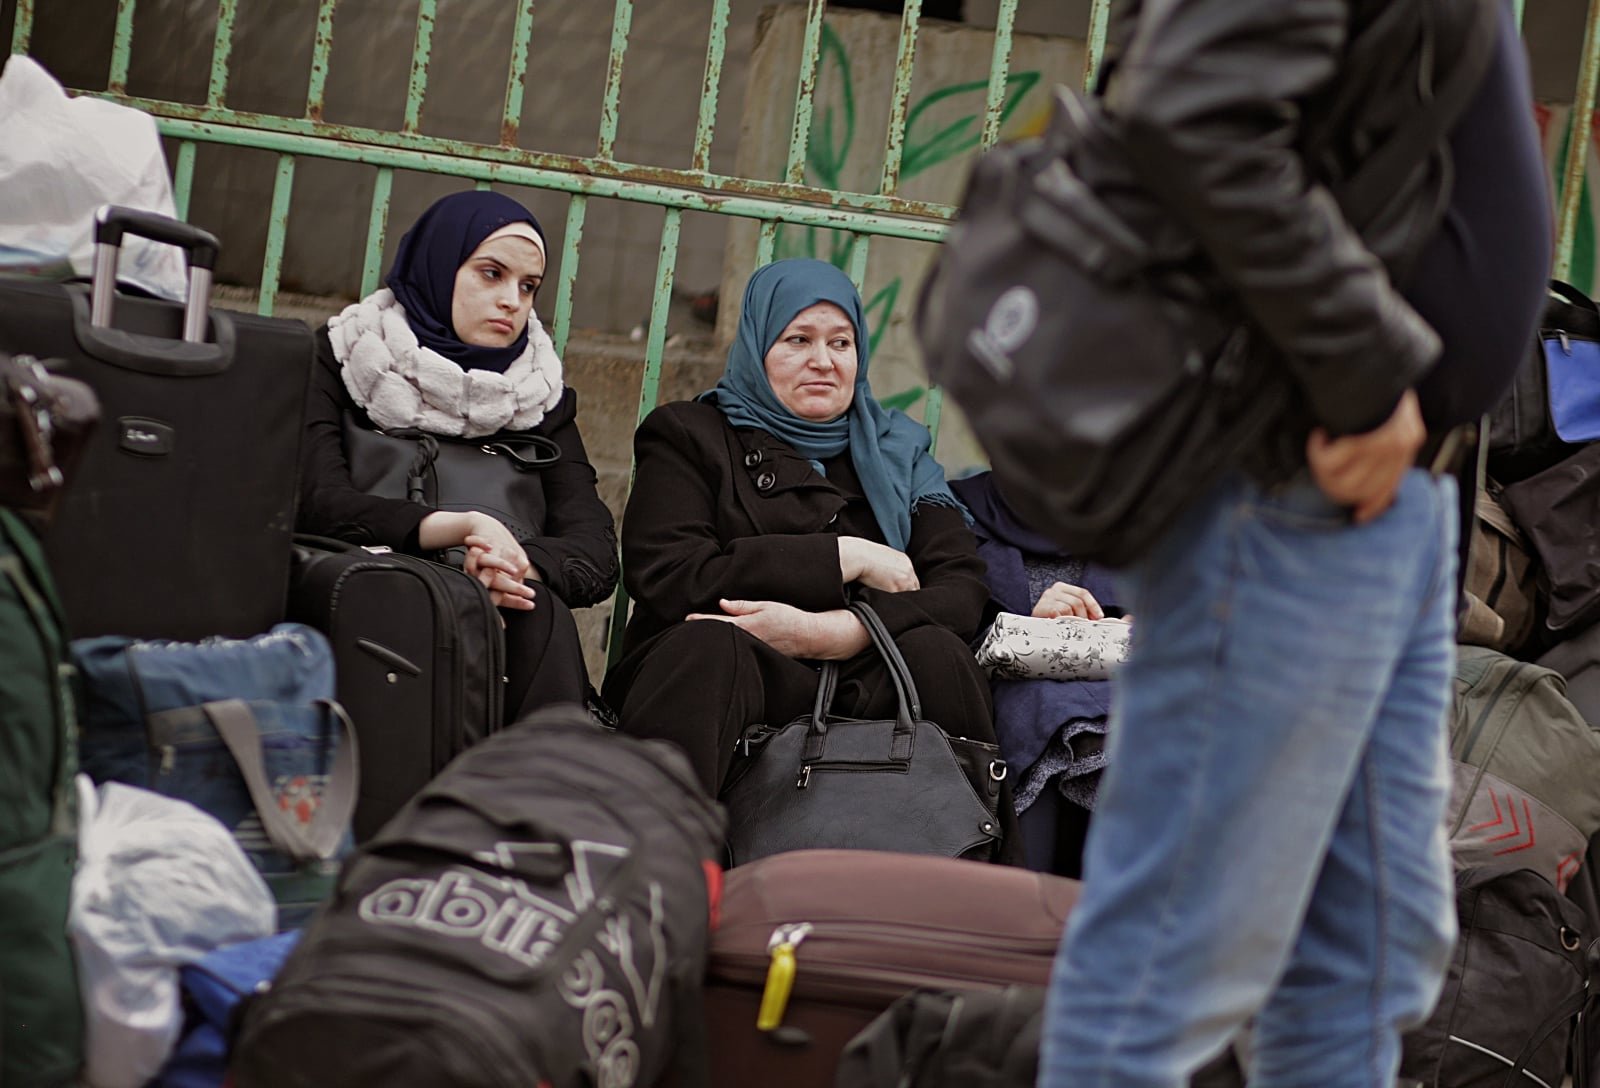 epa06503505 Palestinians wait to cross the border into Egypt through Rafah border crossing between Gaza Strip and Egypt in the southern Gaza Strip, 07 February 2018. Egyptian Authorities reopened Rafah crossing for three days for humanitarian cases, including allowance of crossing the border of people needing medical treatment unavailable in Gaza as well as students enrolled at Egyptian universities and Gazans with jobs abroad.  EPA/MOHAMMED SABER Dostawca: PAP/EPA.